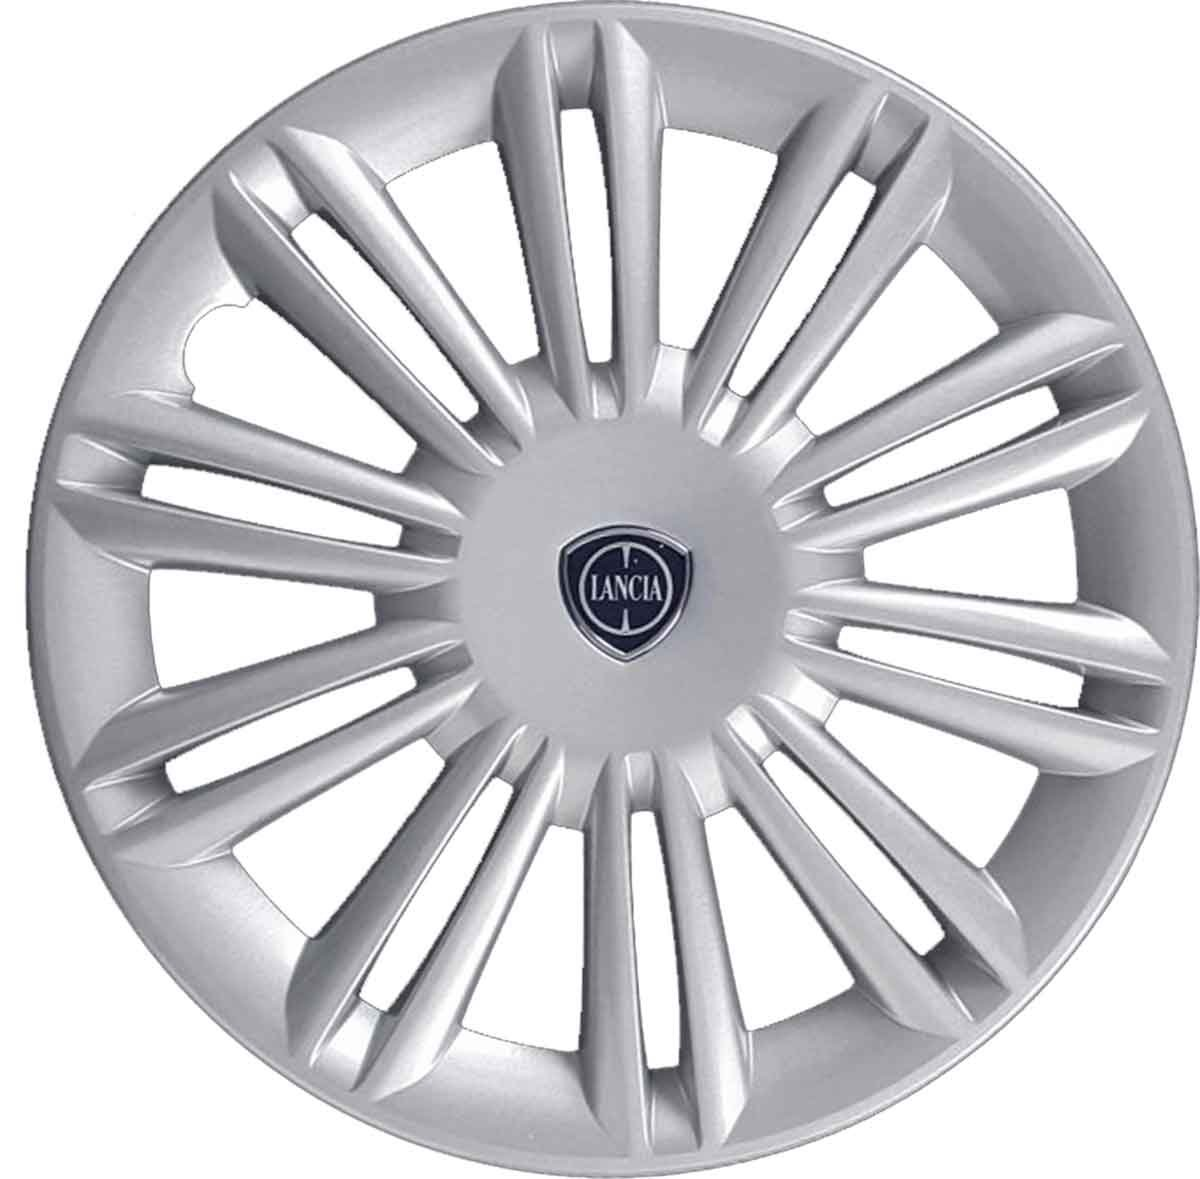 Wheel trim cover cup Rose JSS412- 15 Lancia Ypsilon 2003 Onwards Not Original Aftermarket